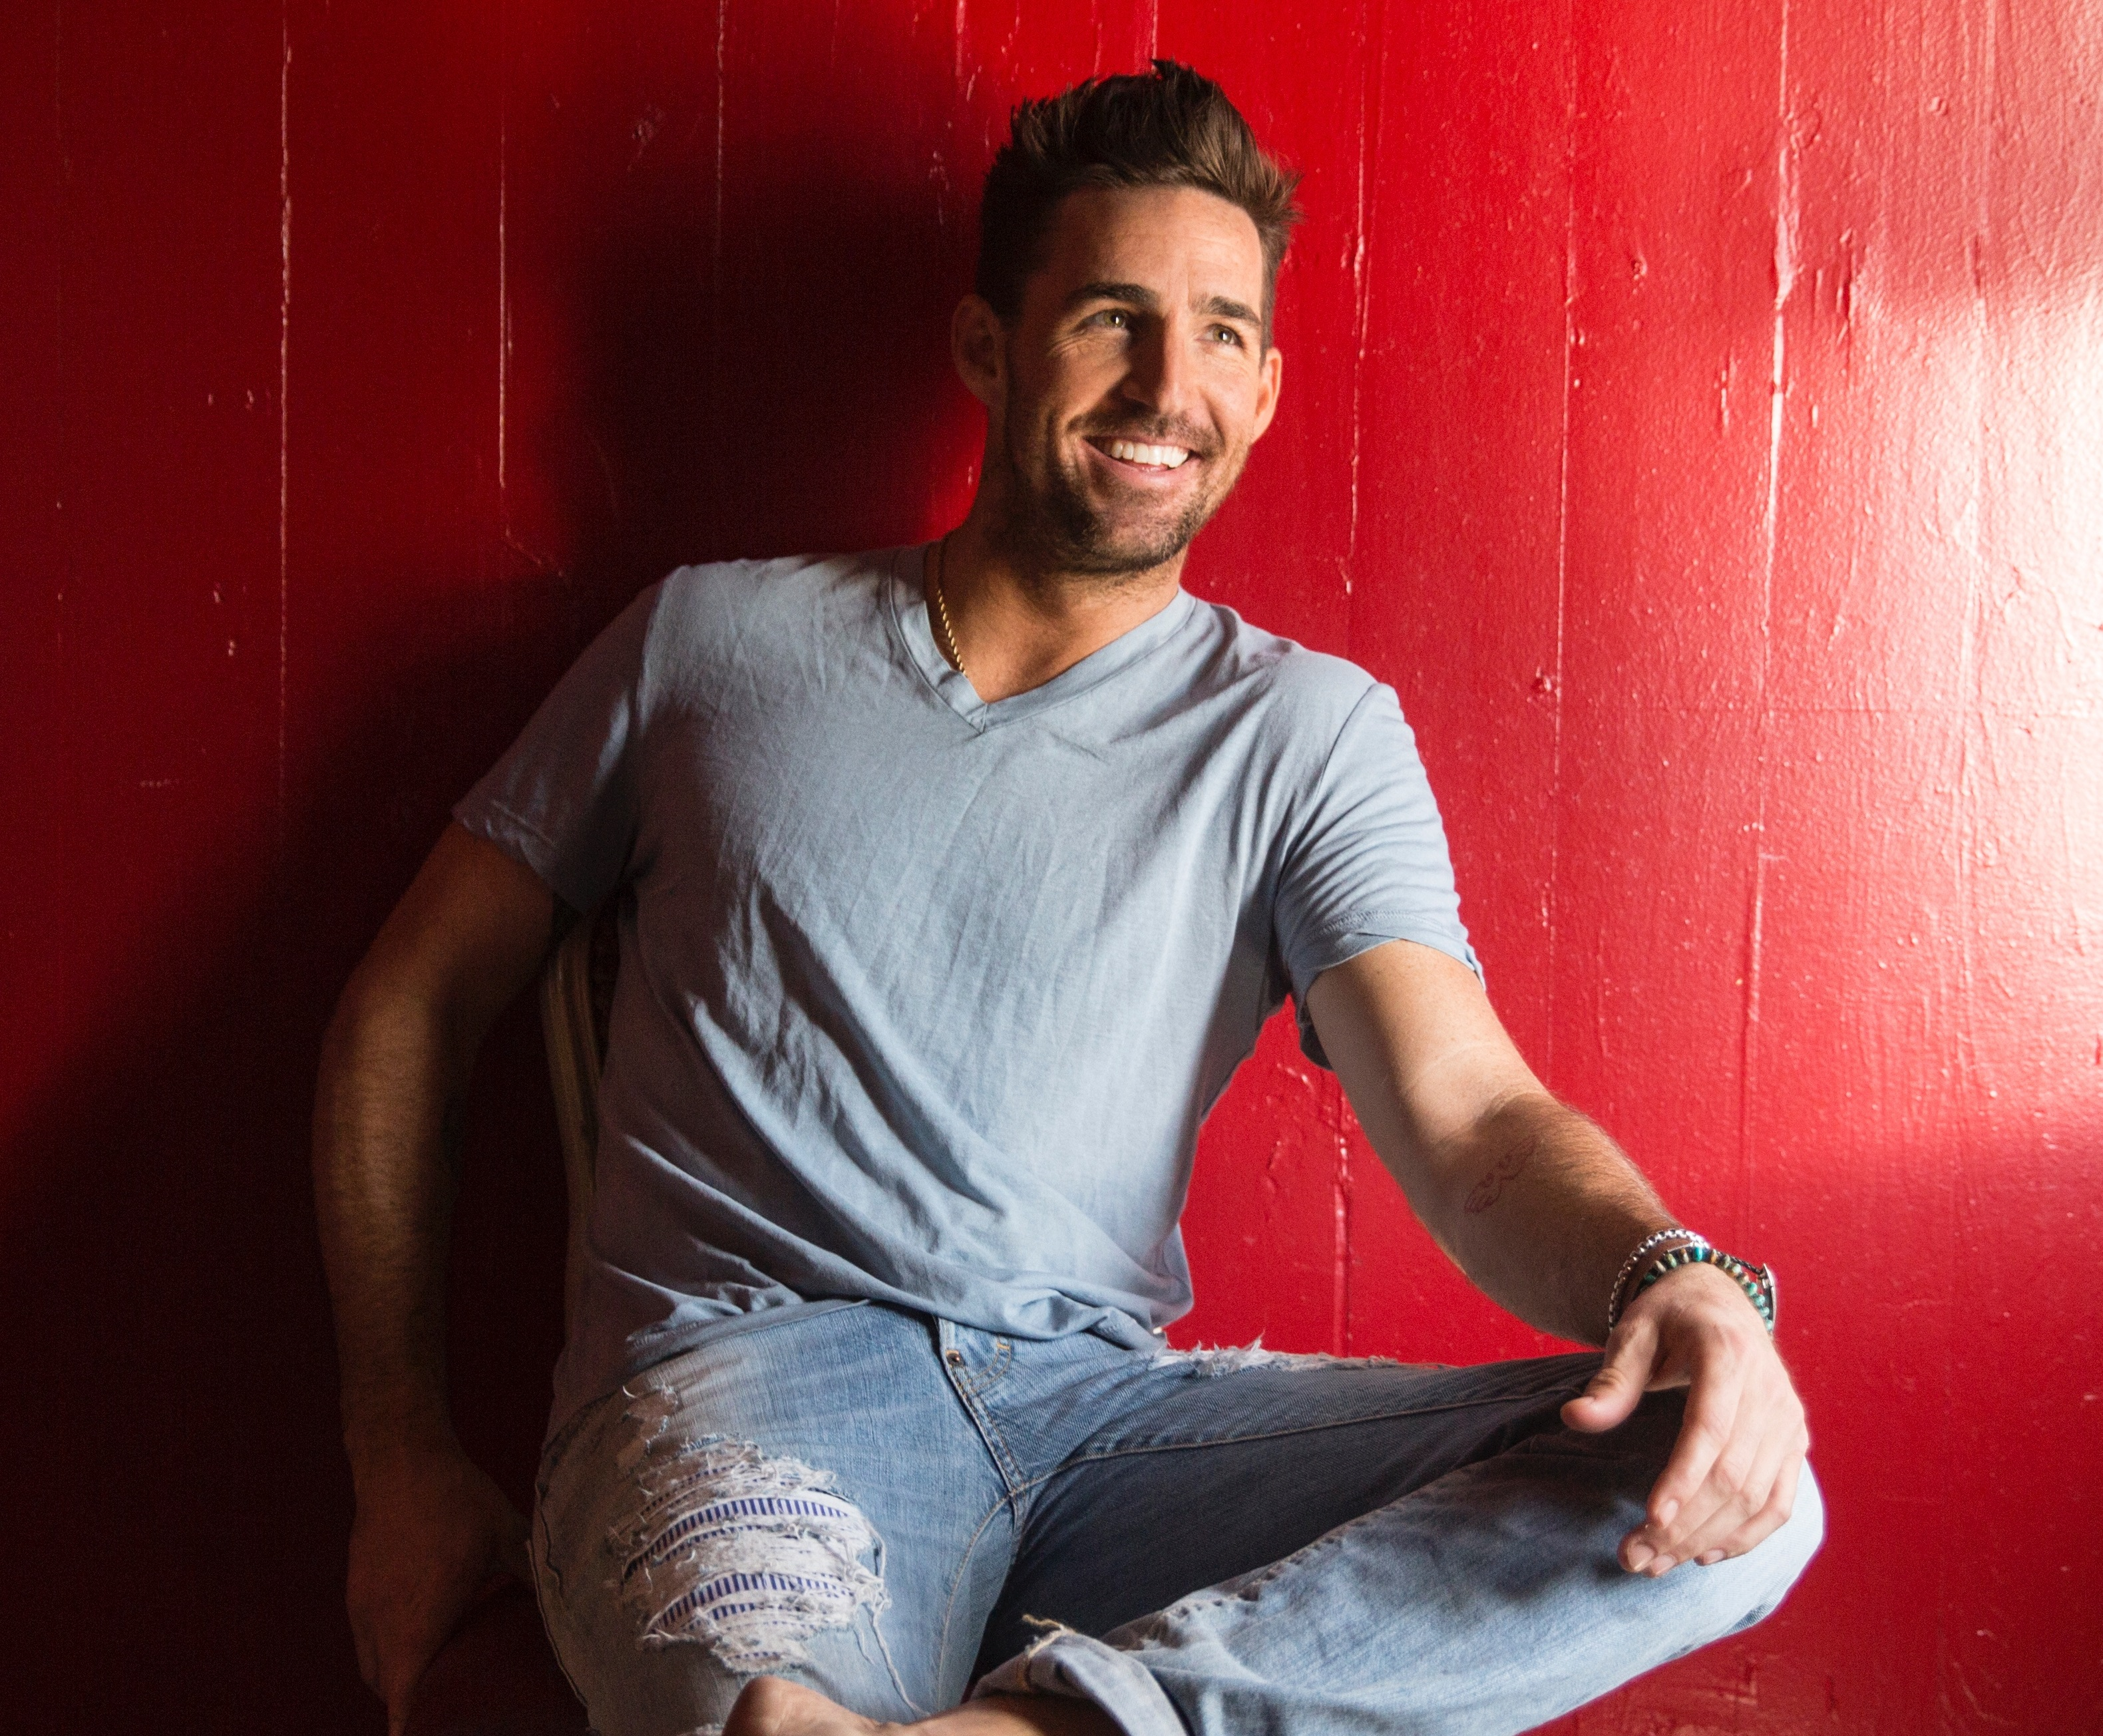 Jake Owen On His Long Career of Feel-Good Songs: 'I Like Being Happy, I Like My Fans to Be Happy'